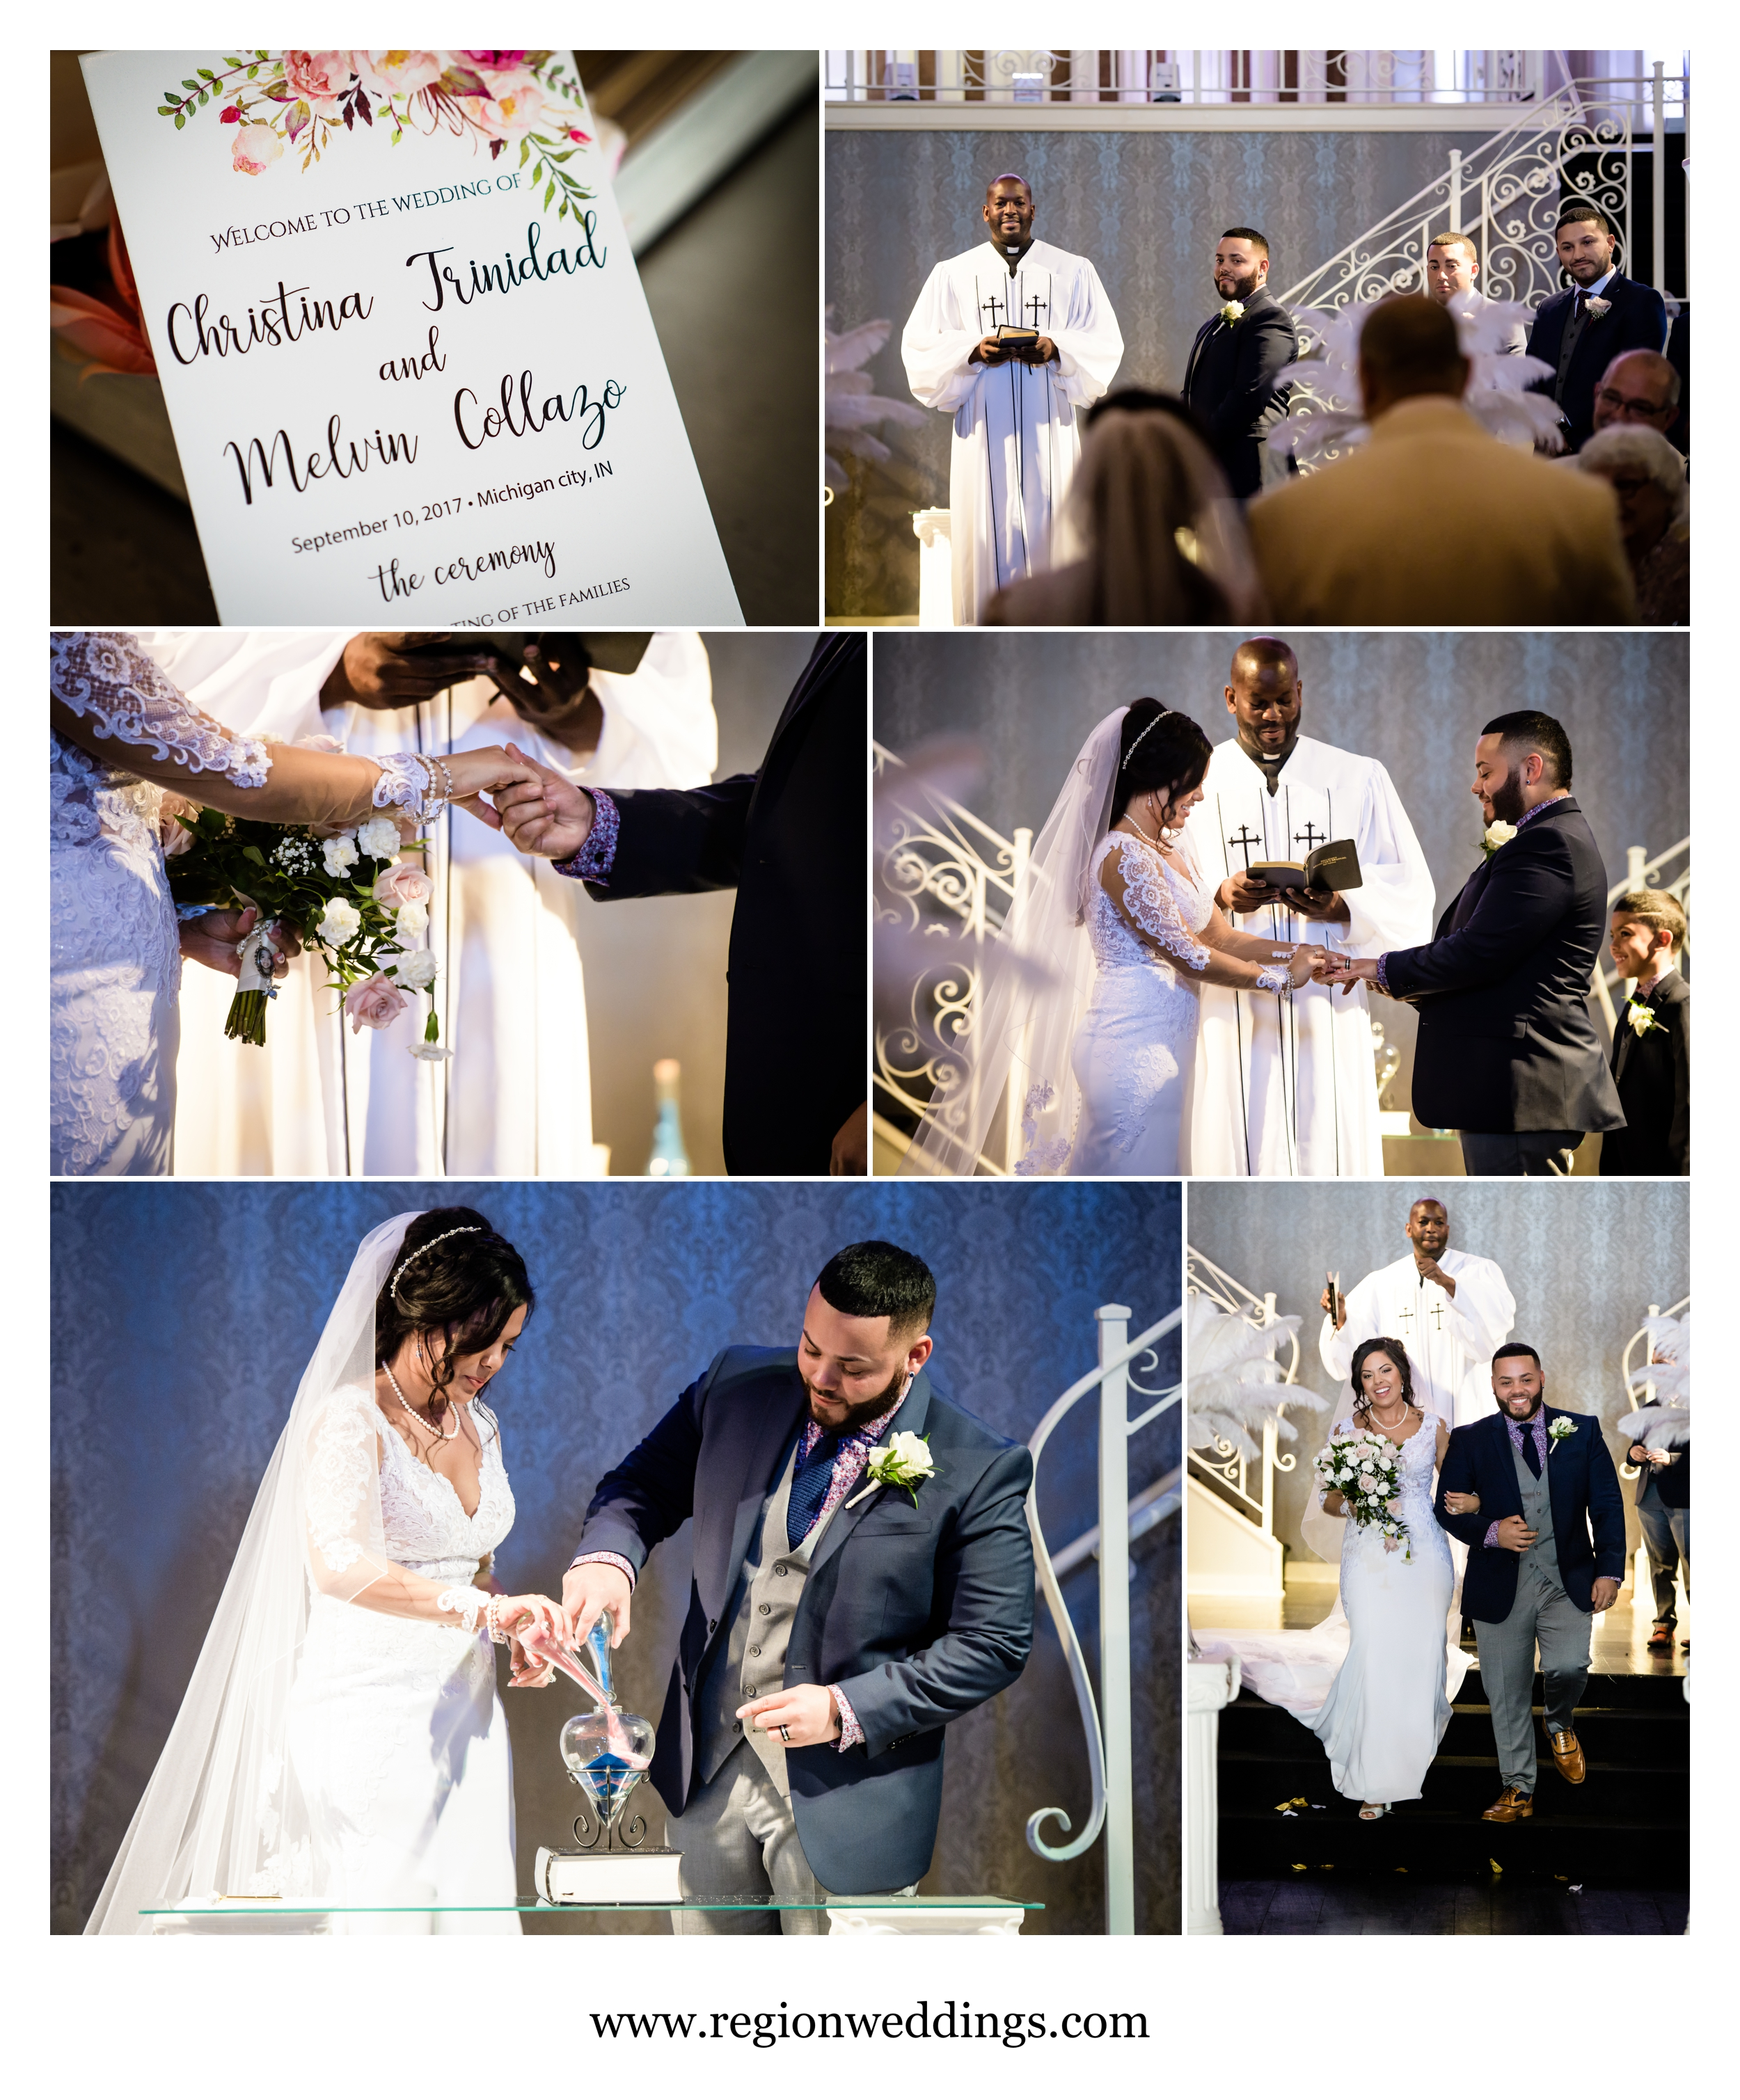 A September wedding ceremony at Uptown Center in Michigan City, Indiana.